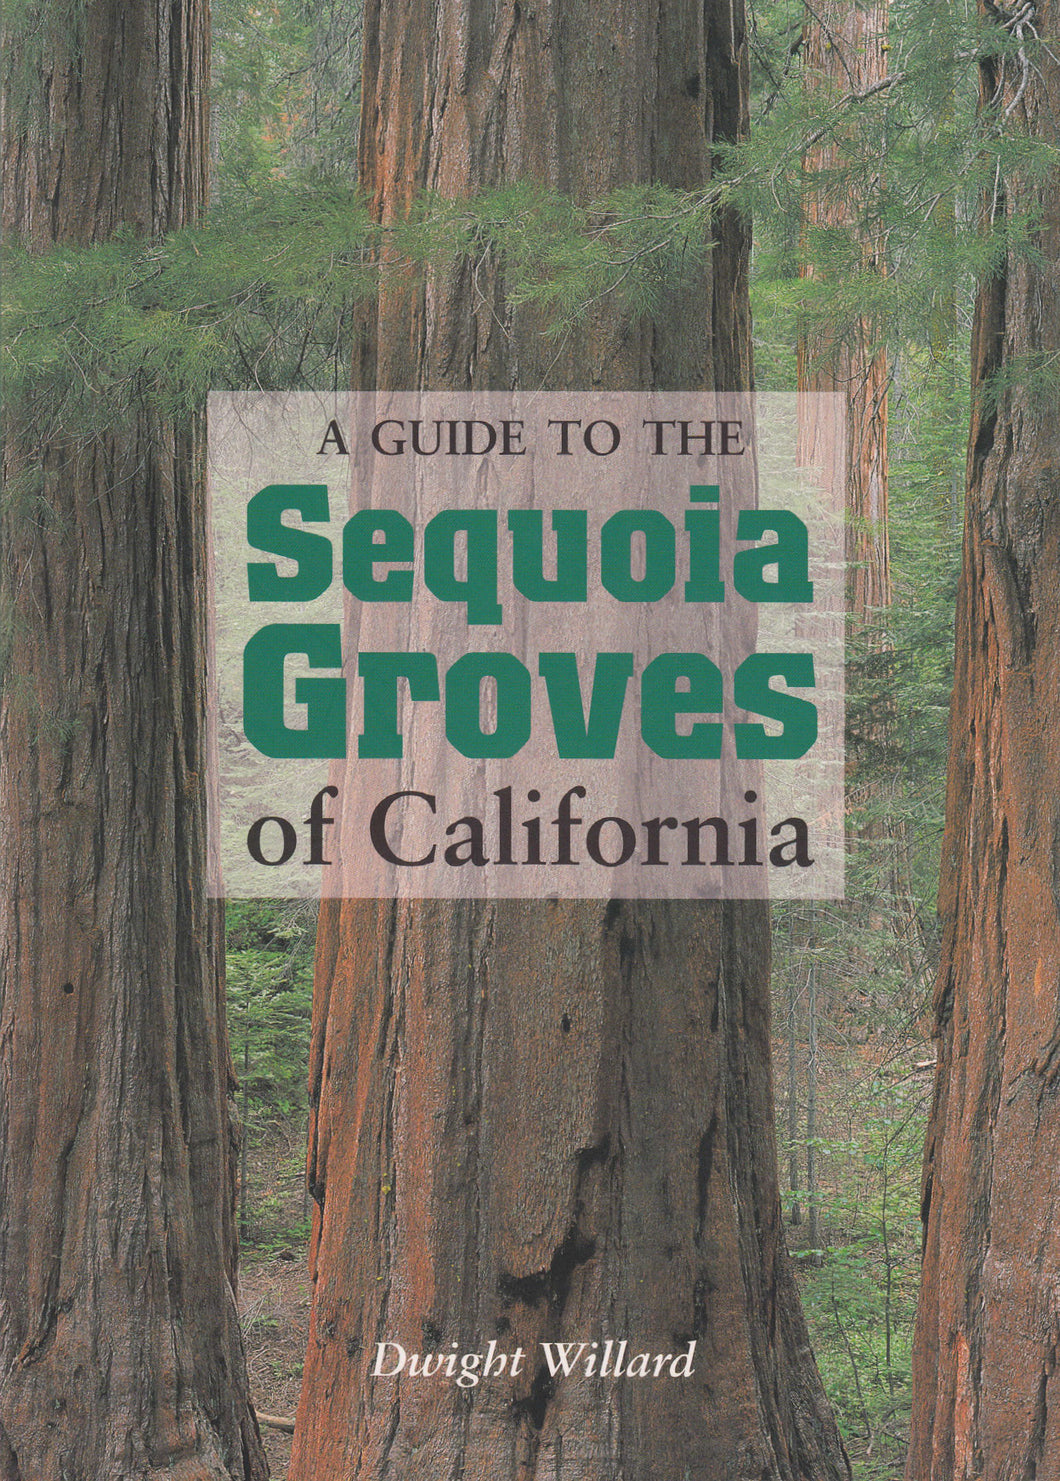 A Guide to the Sequoia Groves of California | Dwight Willard | The Jonsteen Company